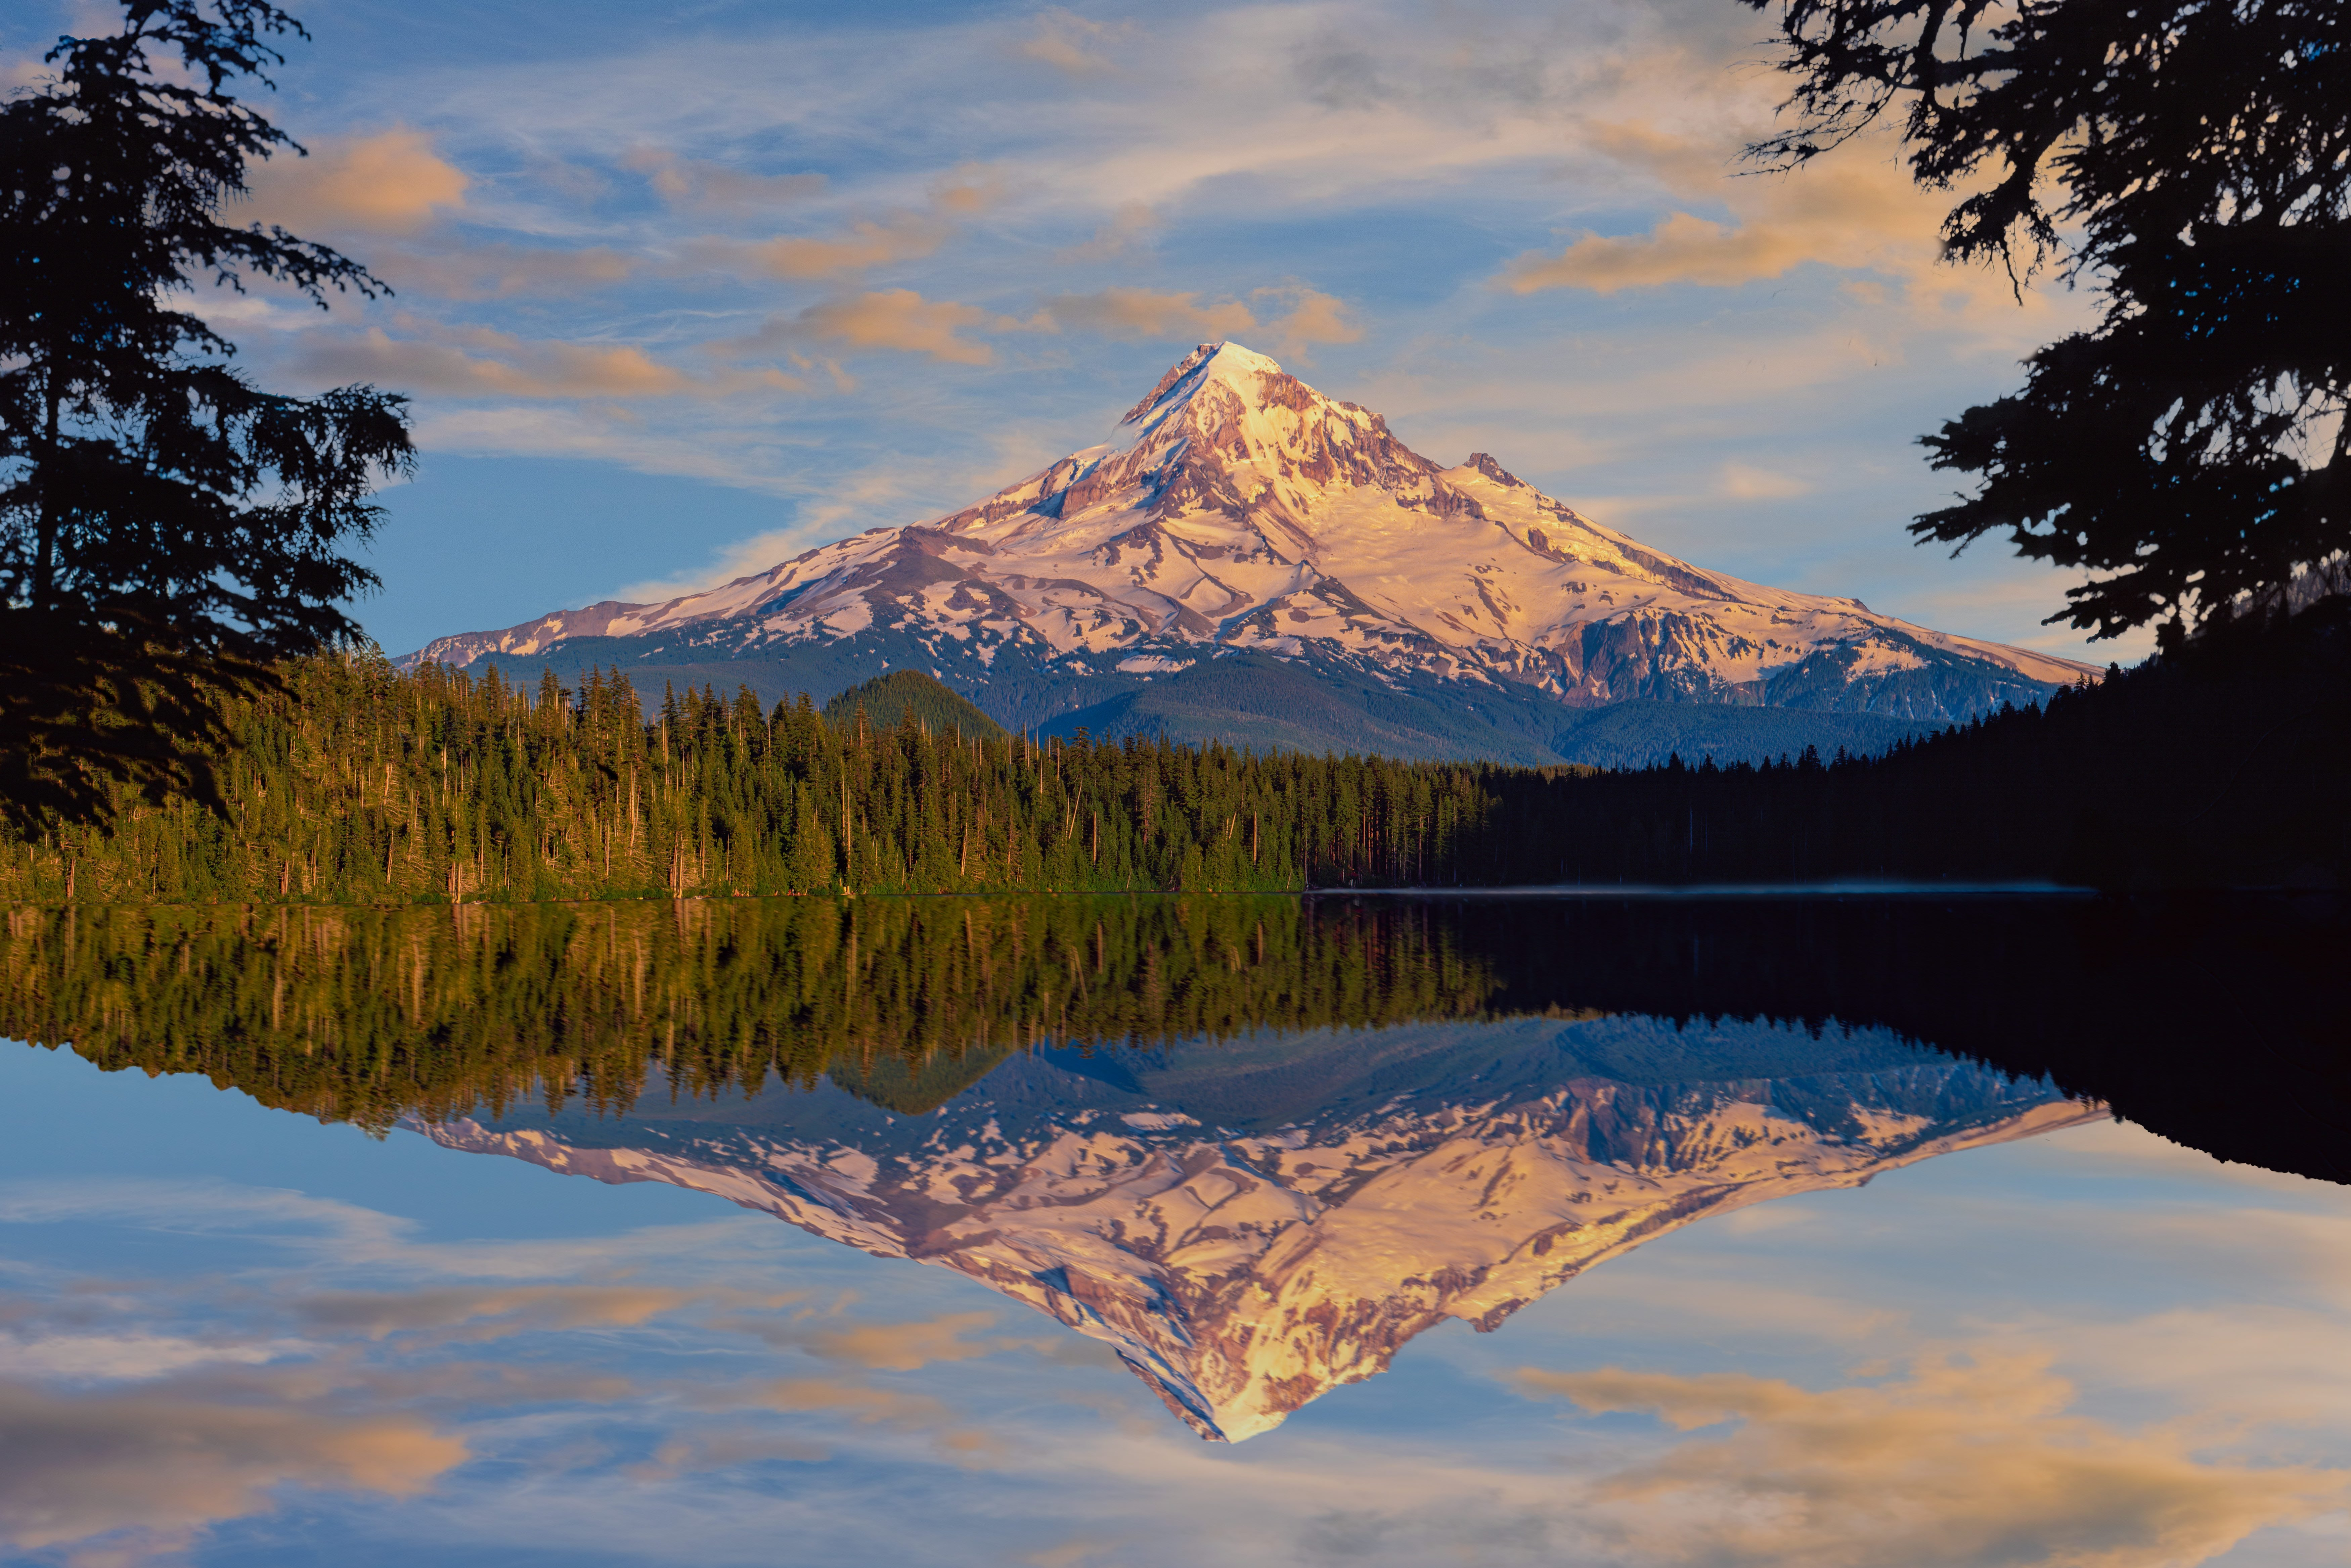 Spring morning in the Cascade Range with Mt. Hood, OR